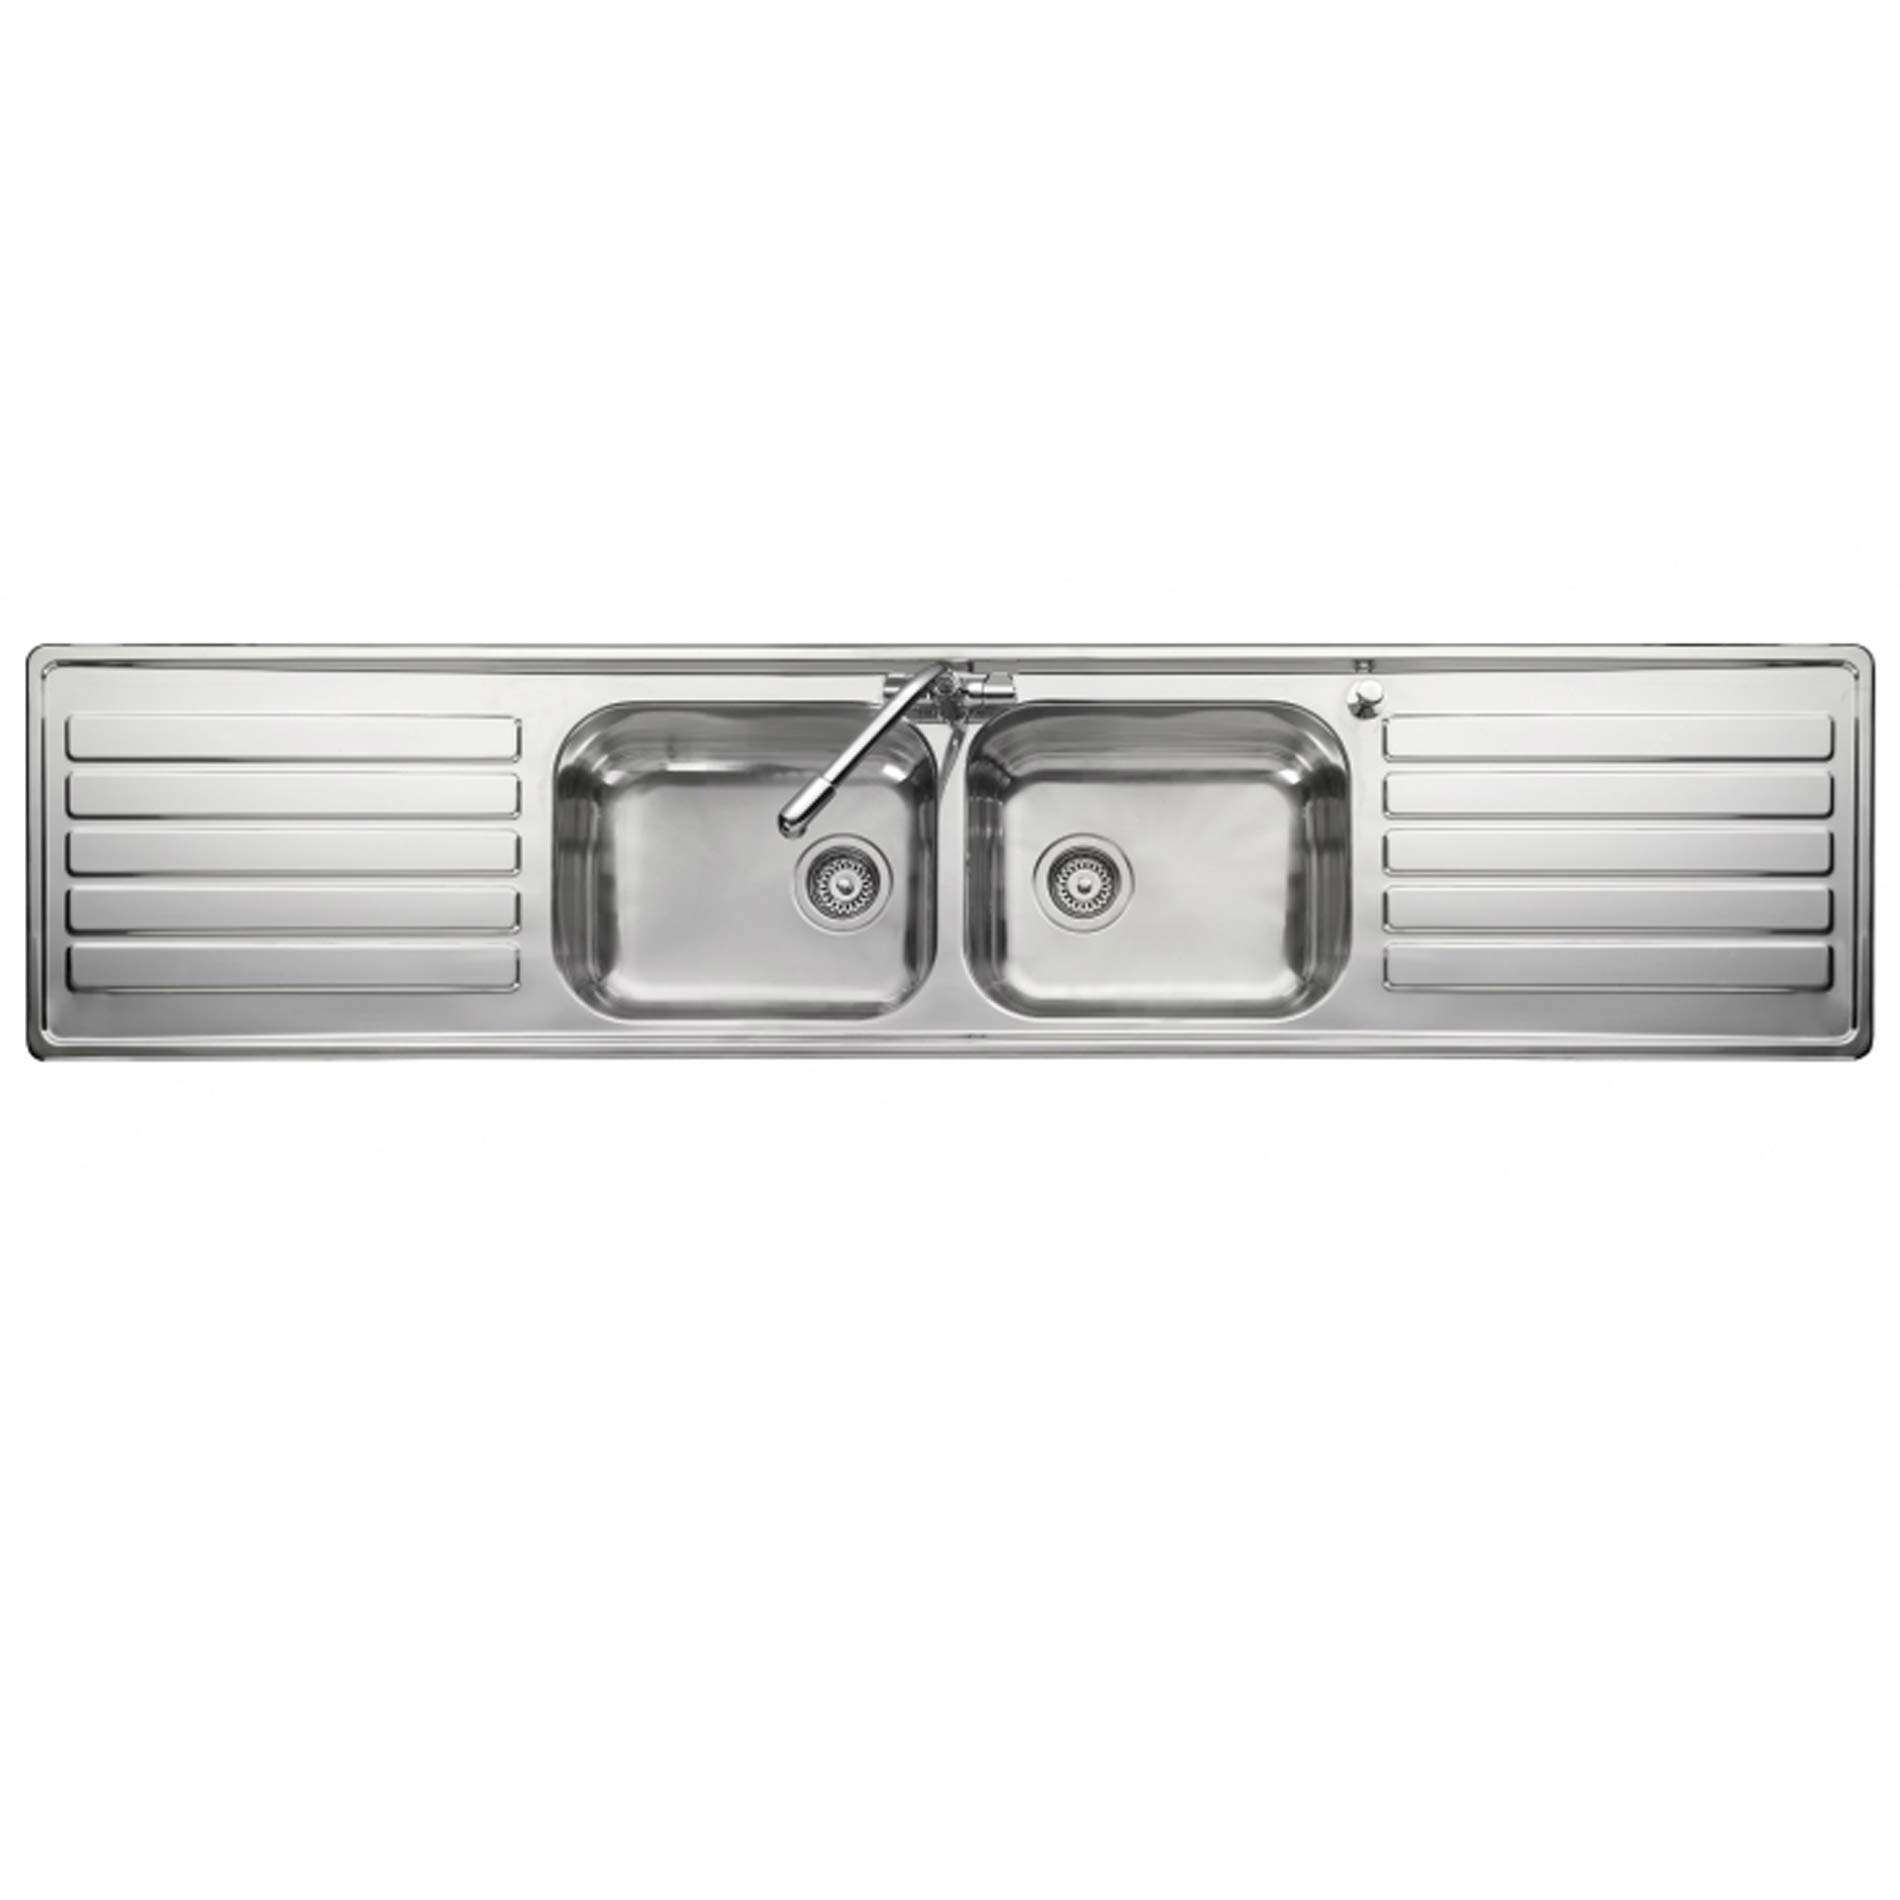 Picture of Luxe LX84 Stainless Steel Sink